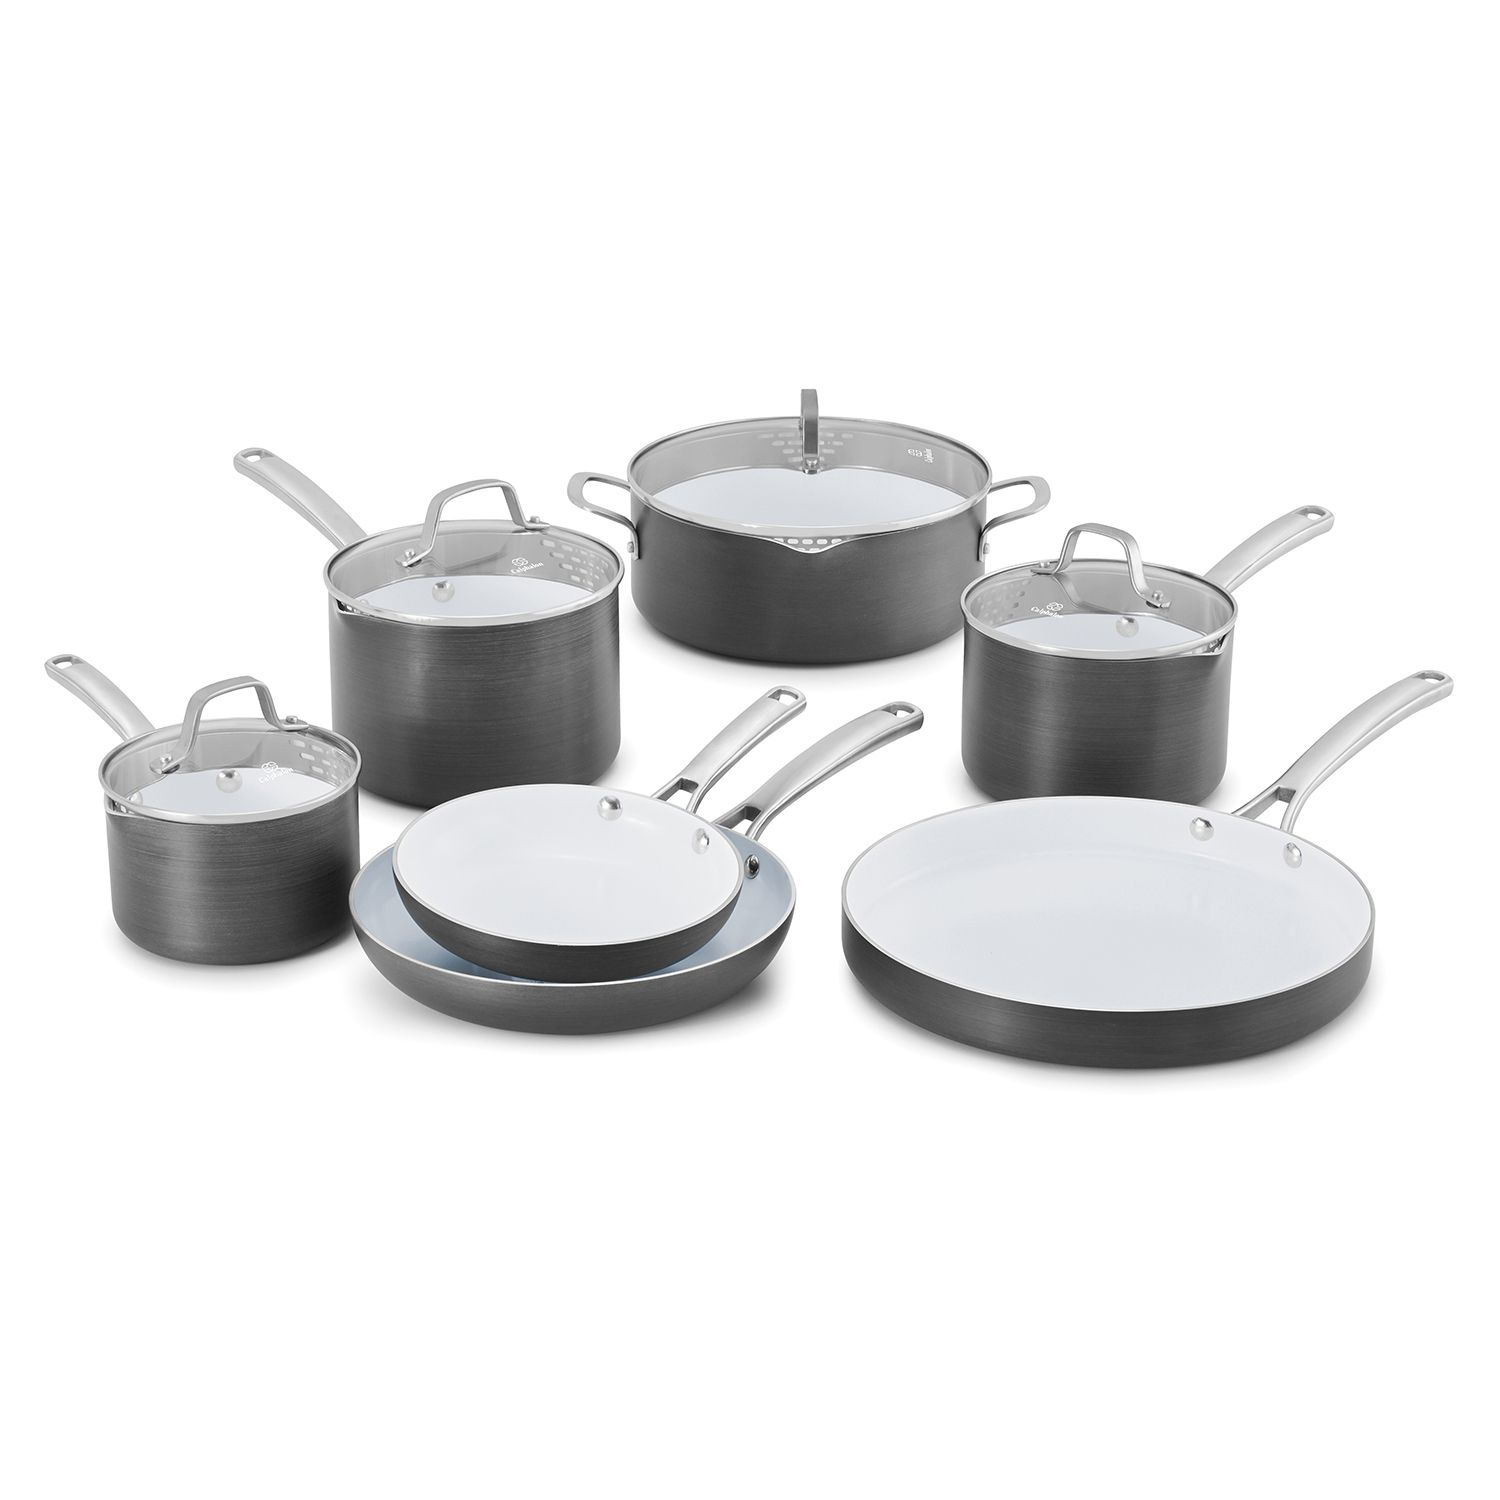 calphalon classic 11pc ceramic cookware set